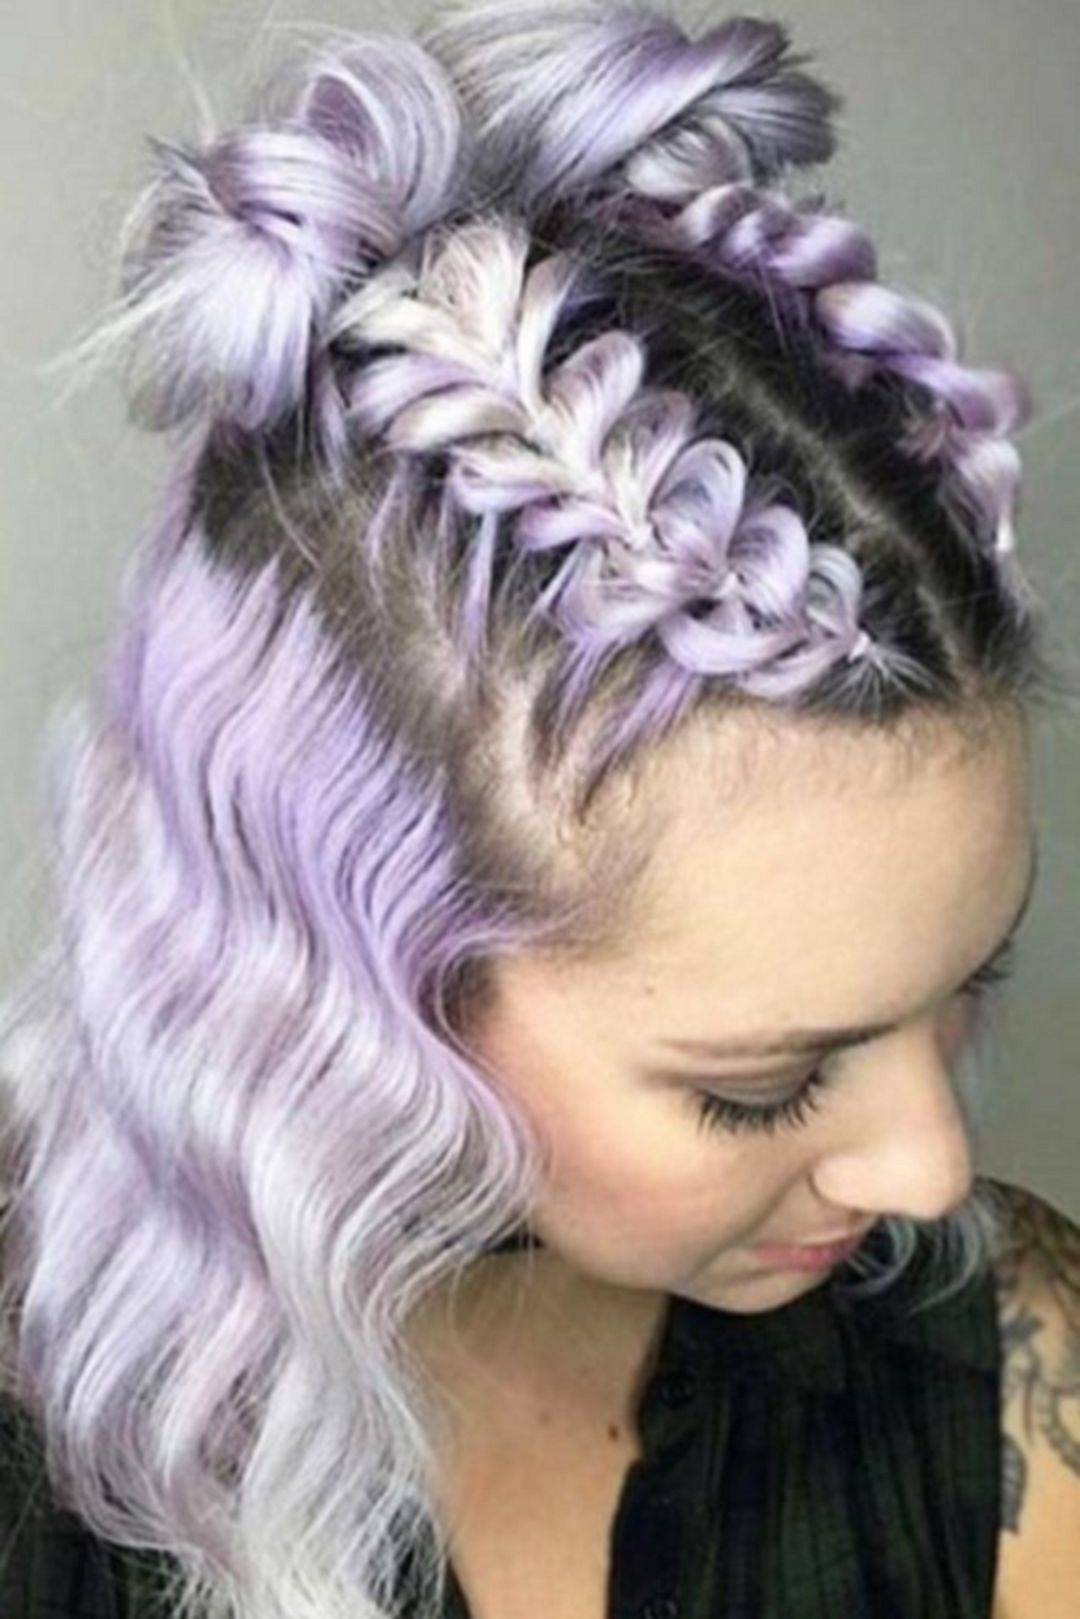 Cute Braid Hairstyles Amazing 30 Awesome Cute Braided Hairstyles Ideas For Women Look More Young